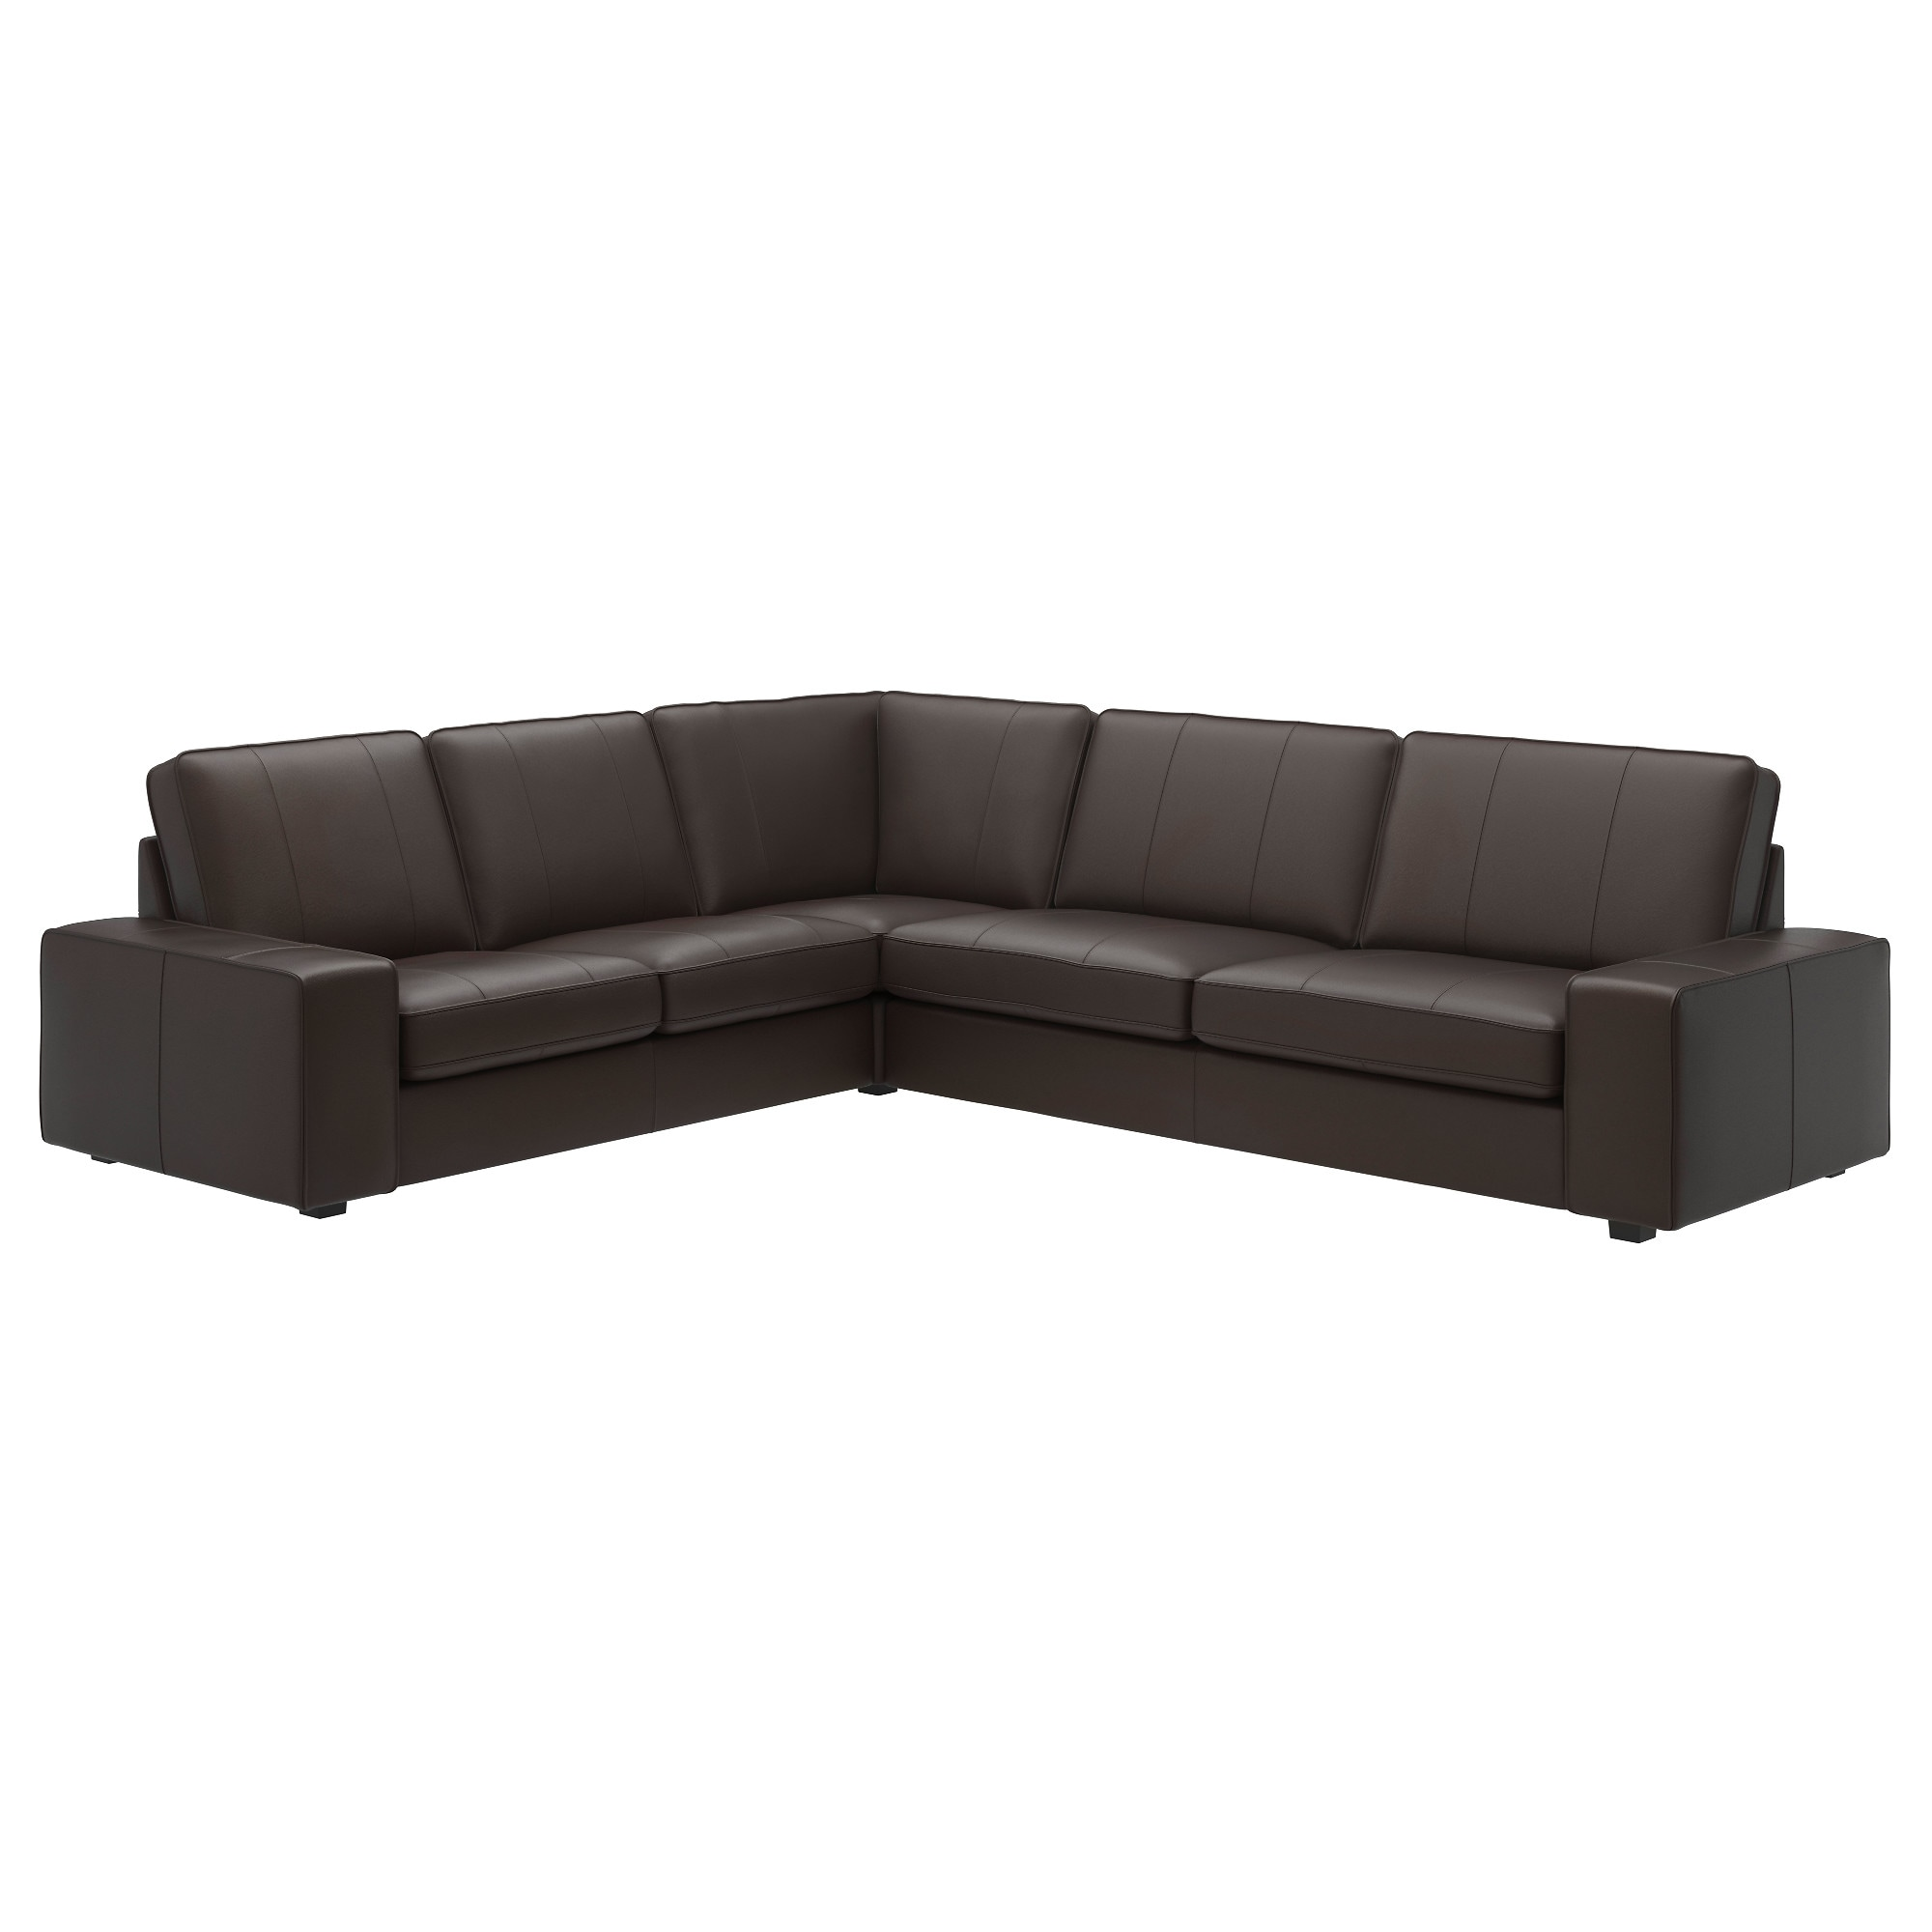 Leather Faux Leather Sectional Sofas IKEA